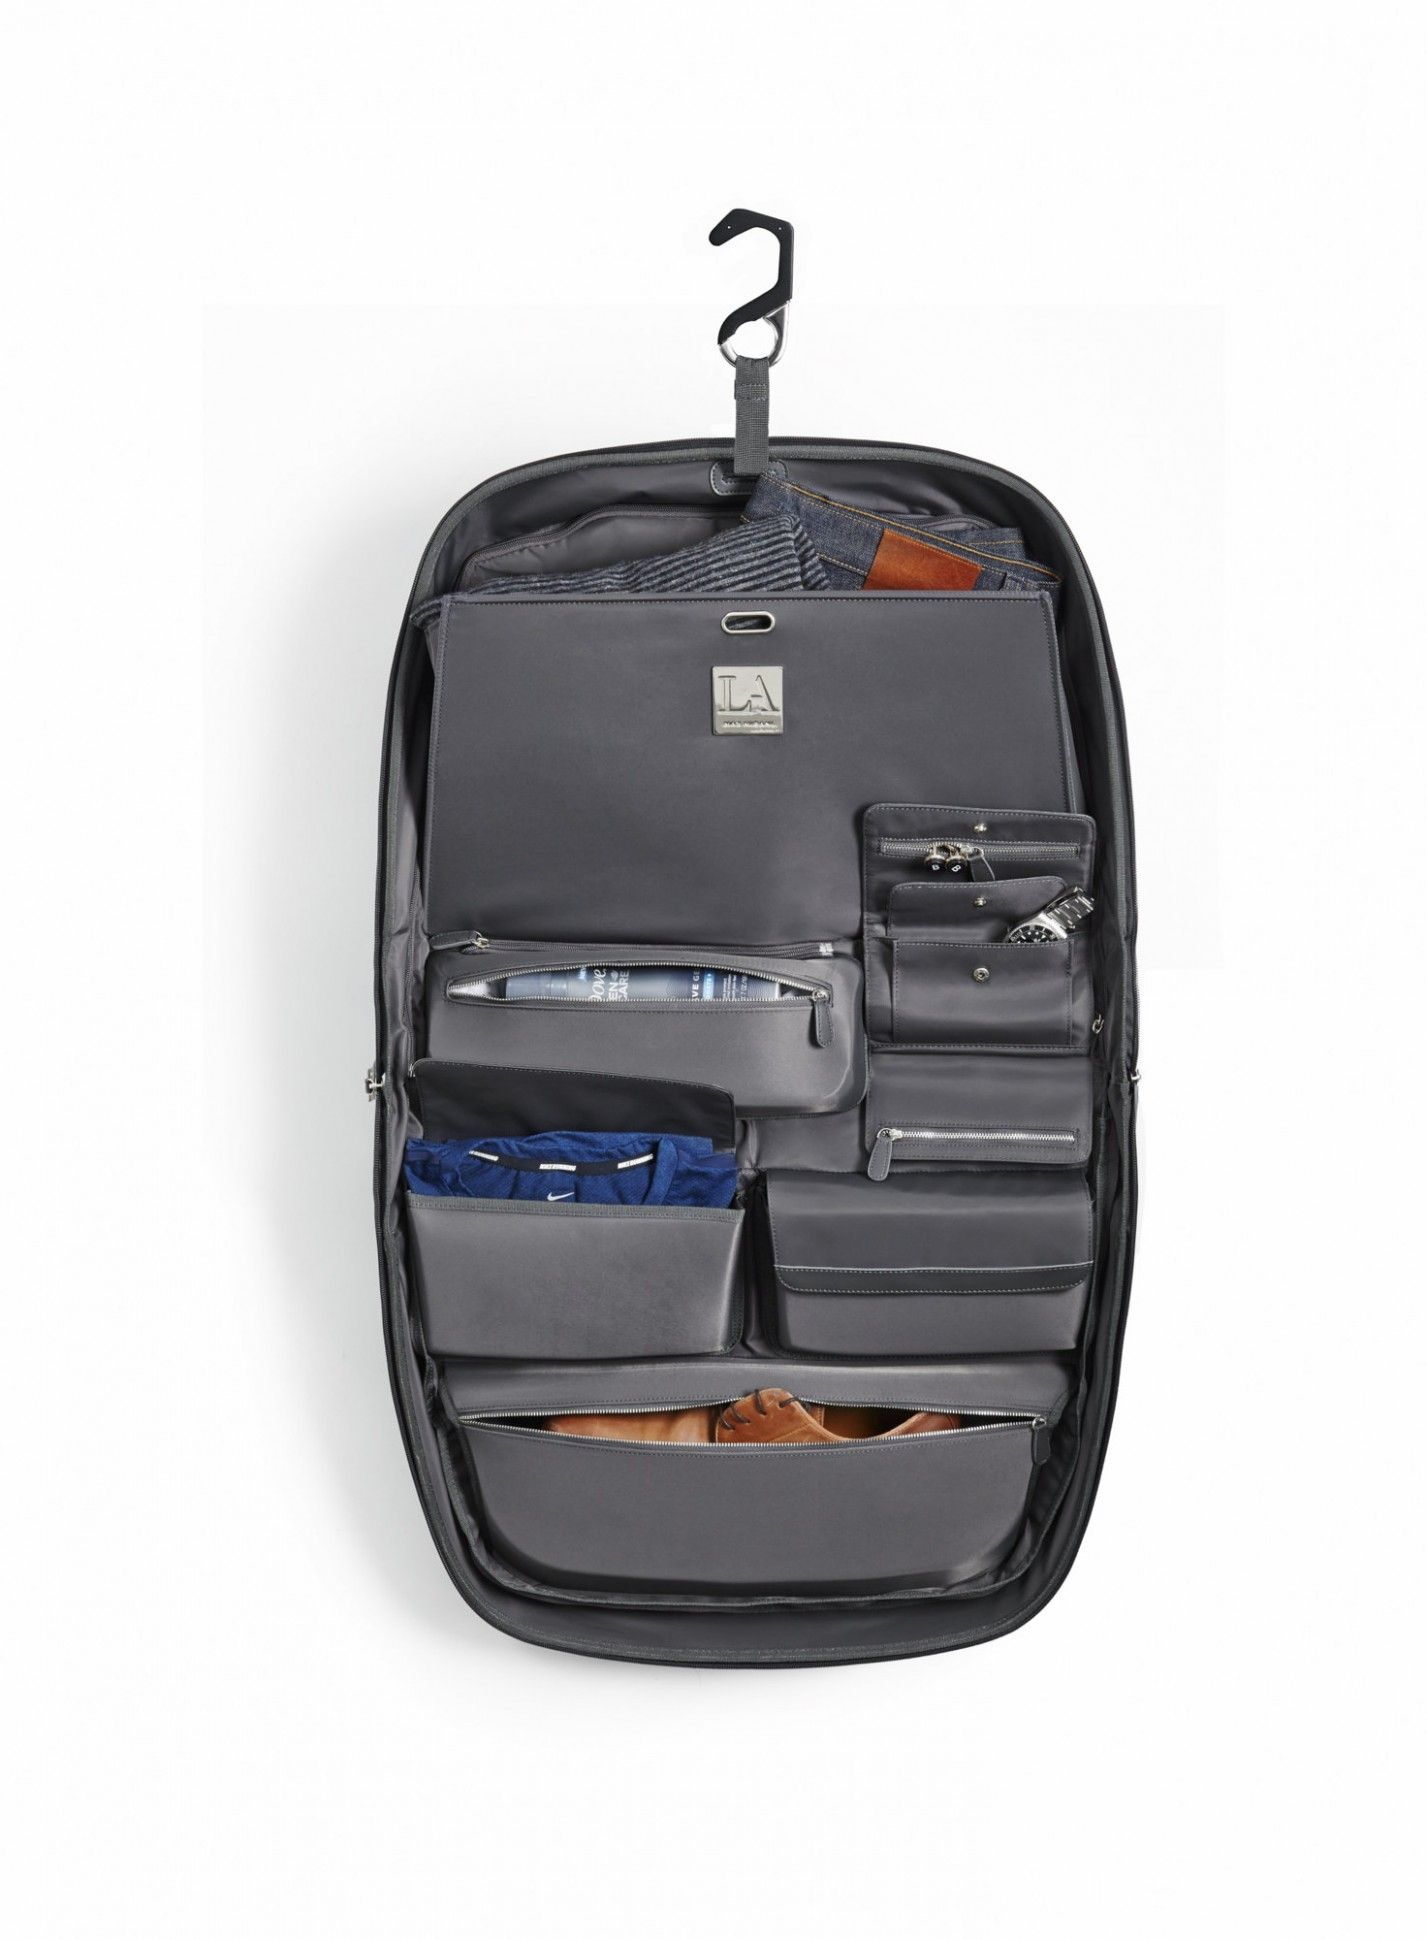 Must Have Carry On Bag Compact, Ingenious Organizer